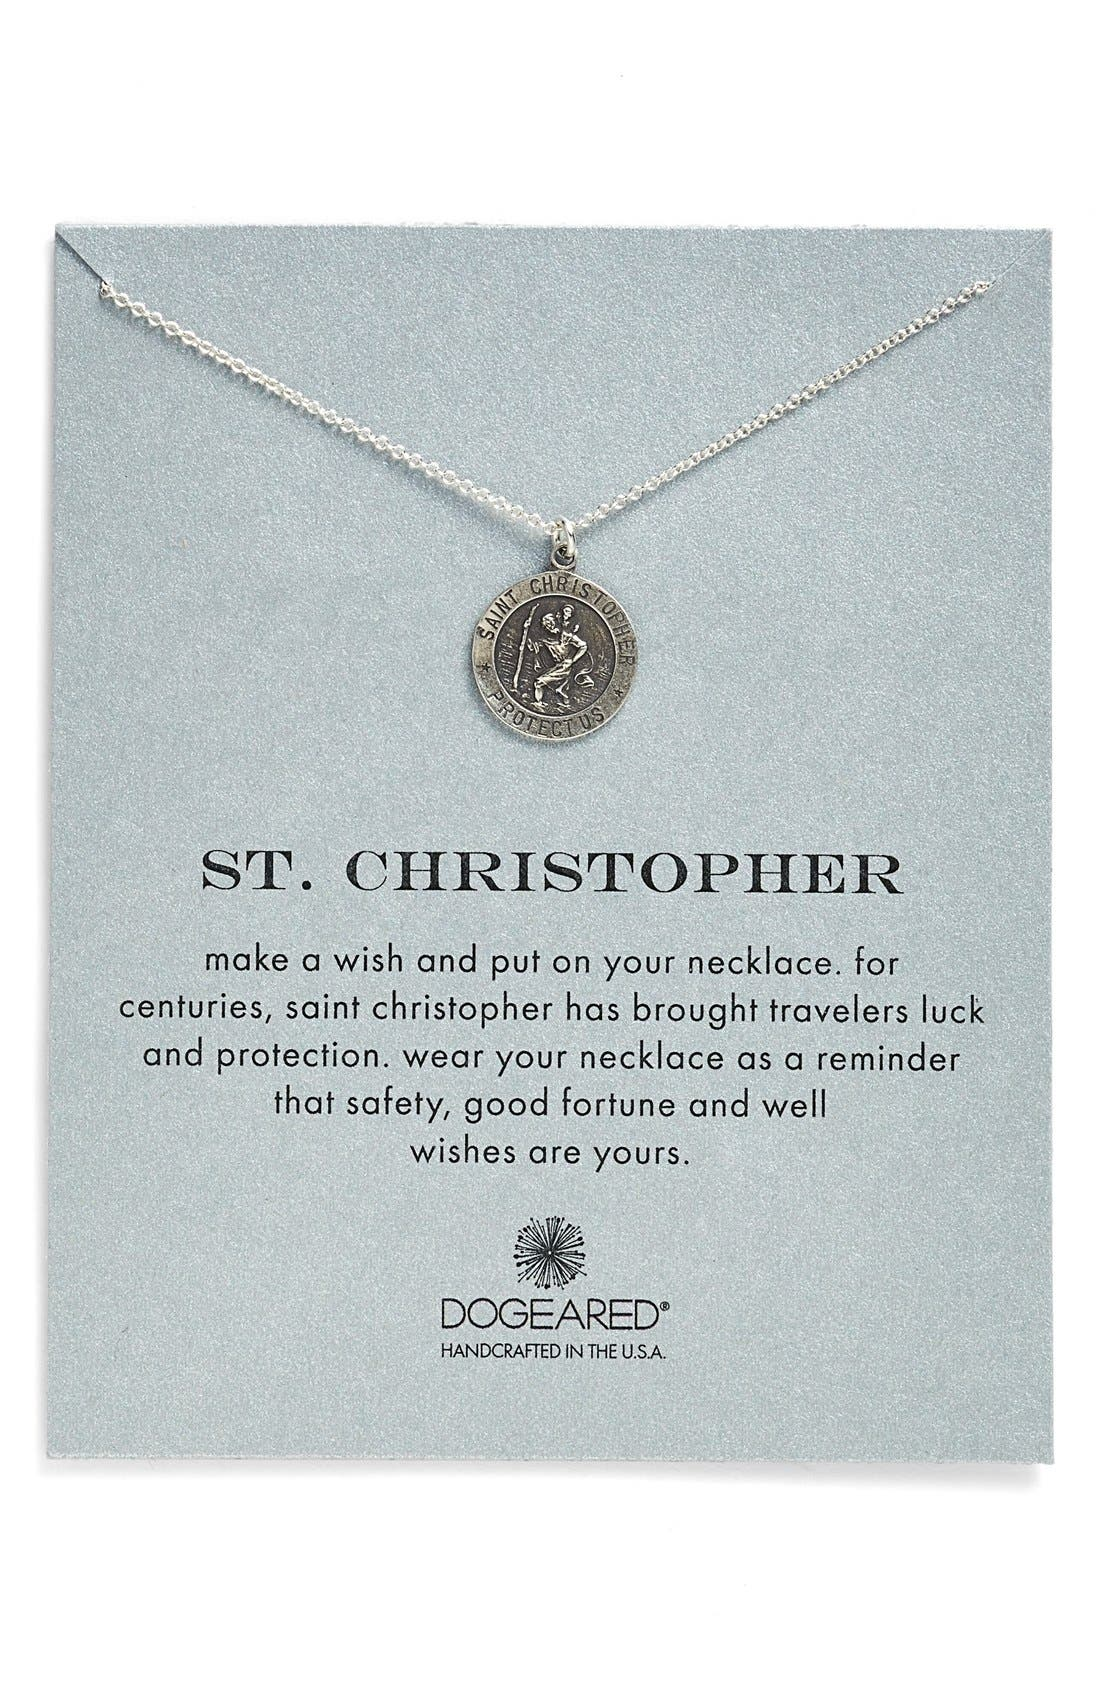 Alternate Image 1 Selected - Dogeared 'St. Christopher' Pendant Necklace